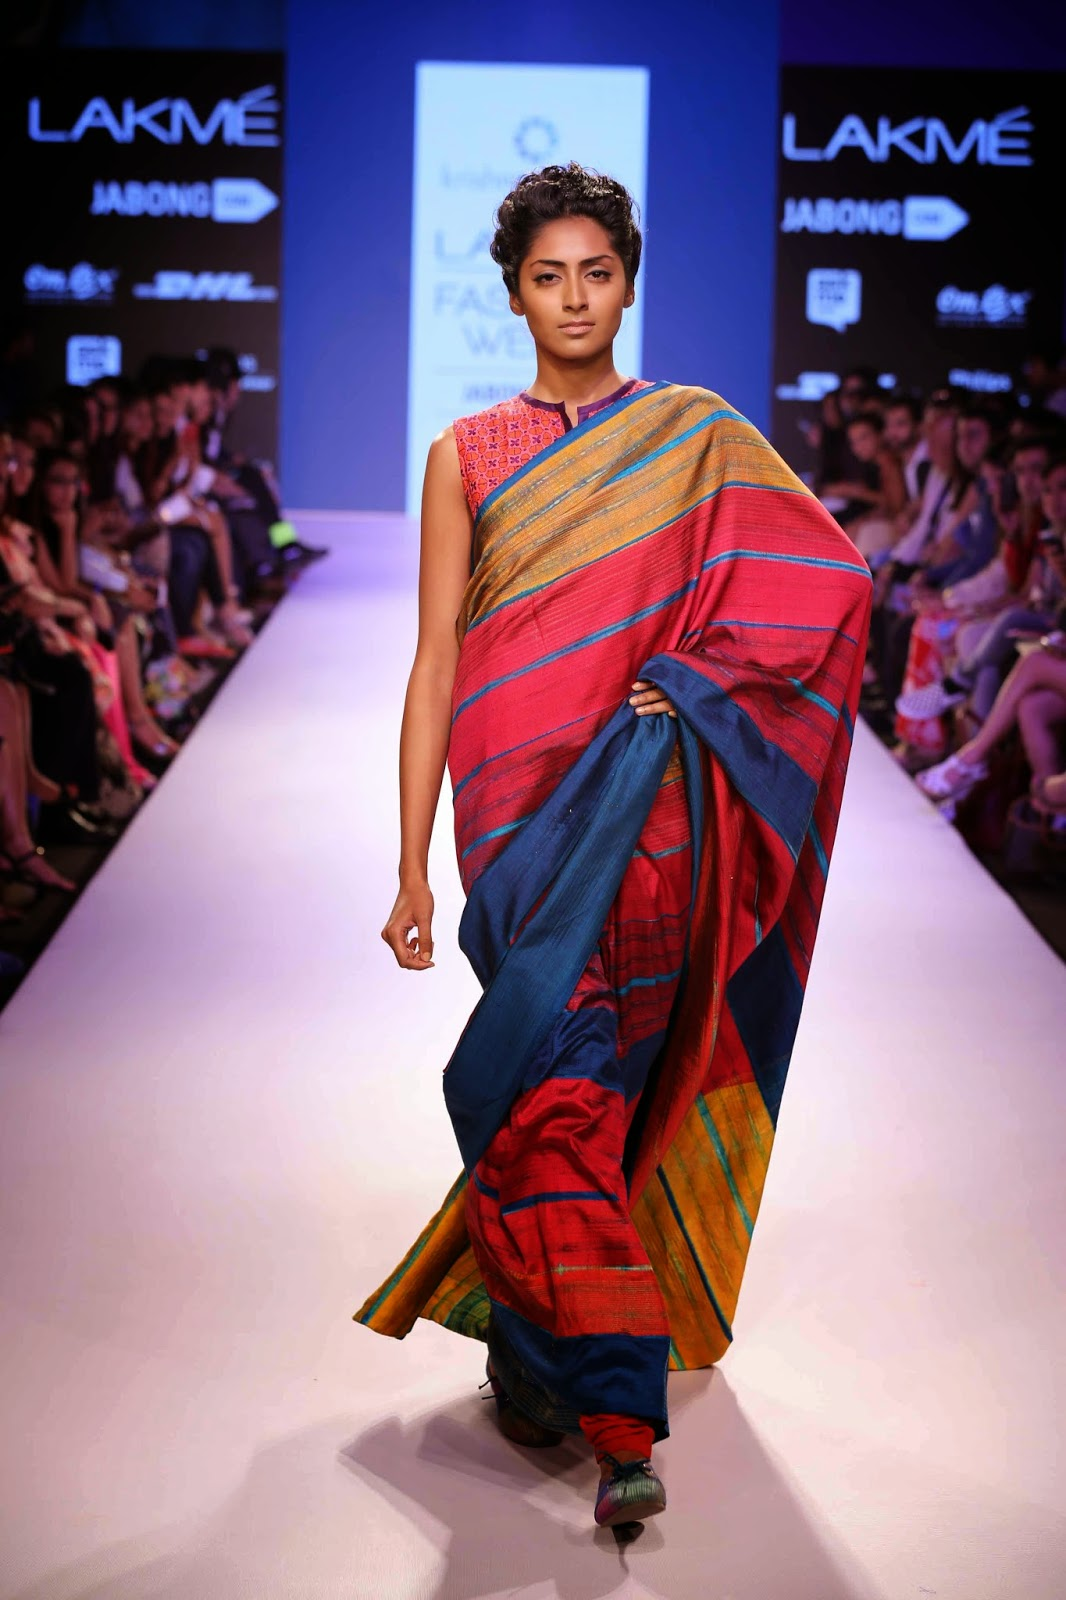 http://aquaintperspective.blogspot.in/ LIFW Day 1 Krishna Mehta